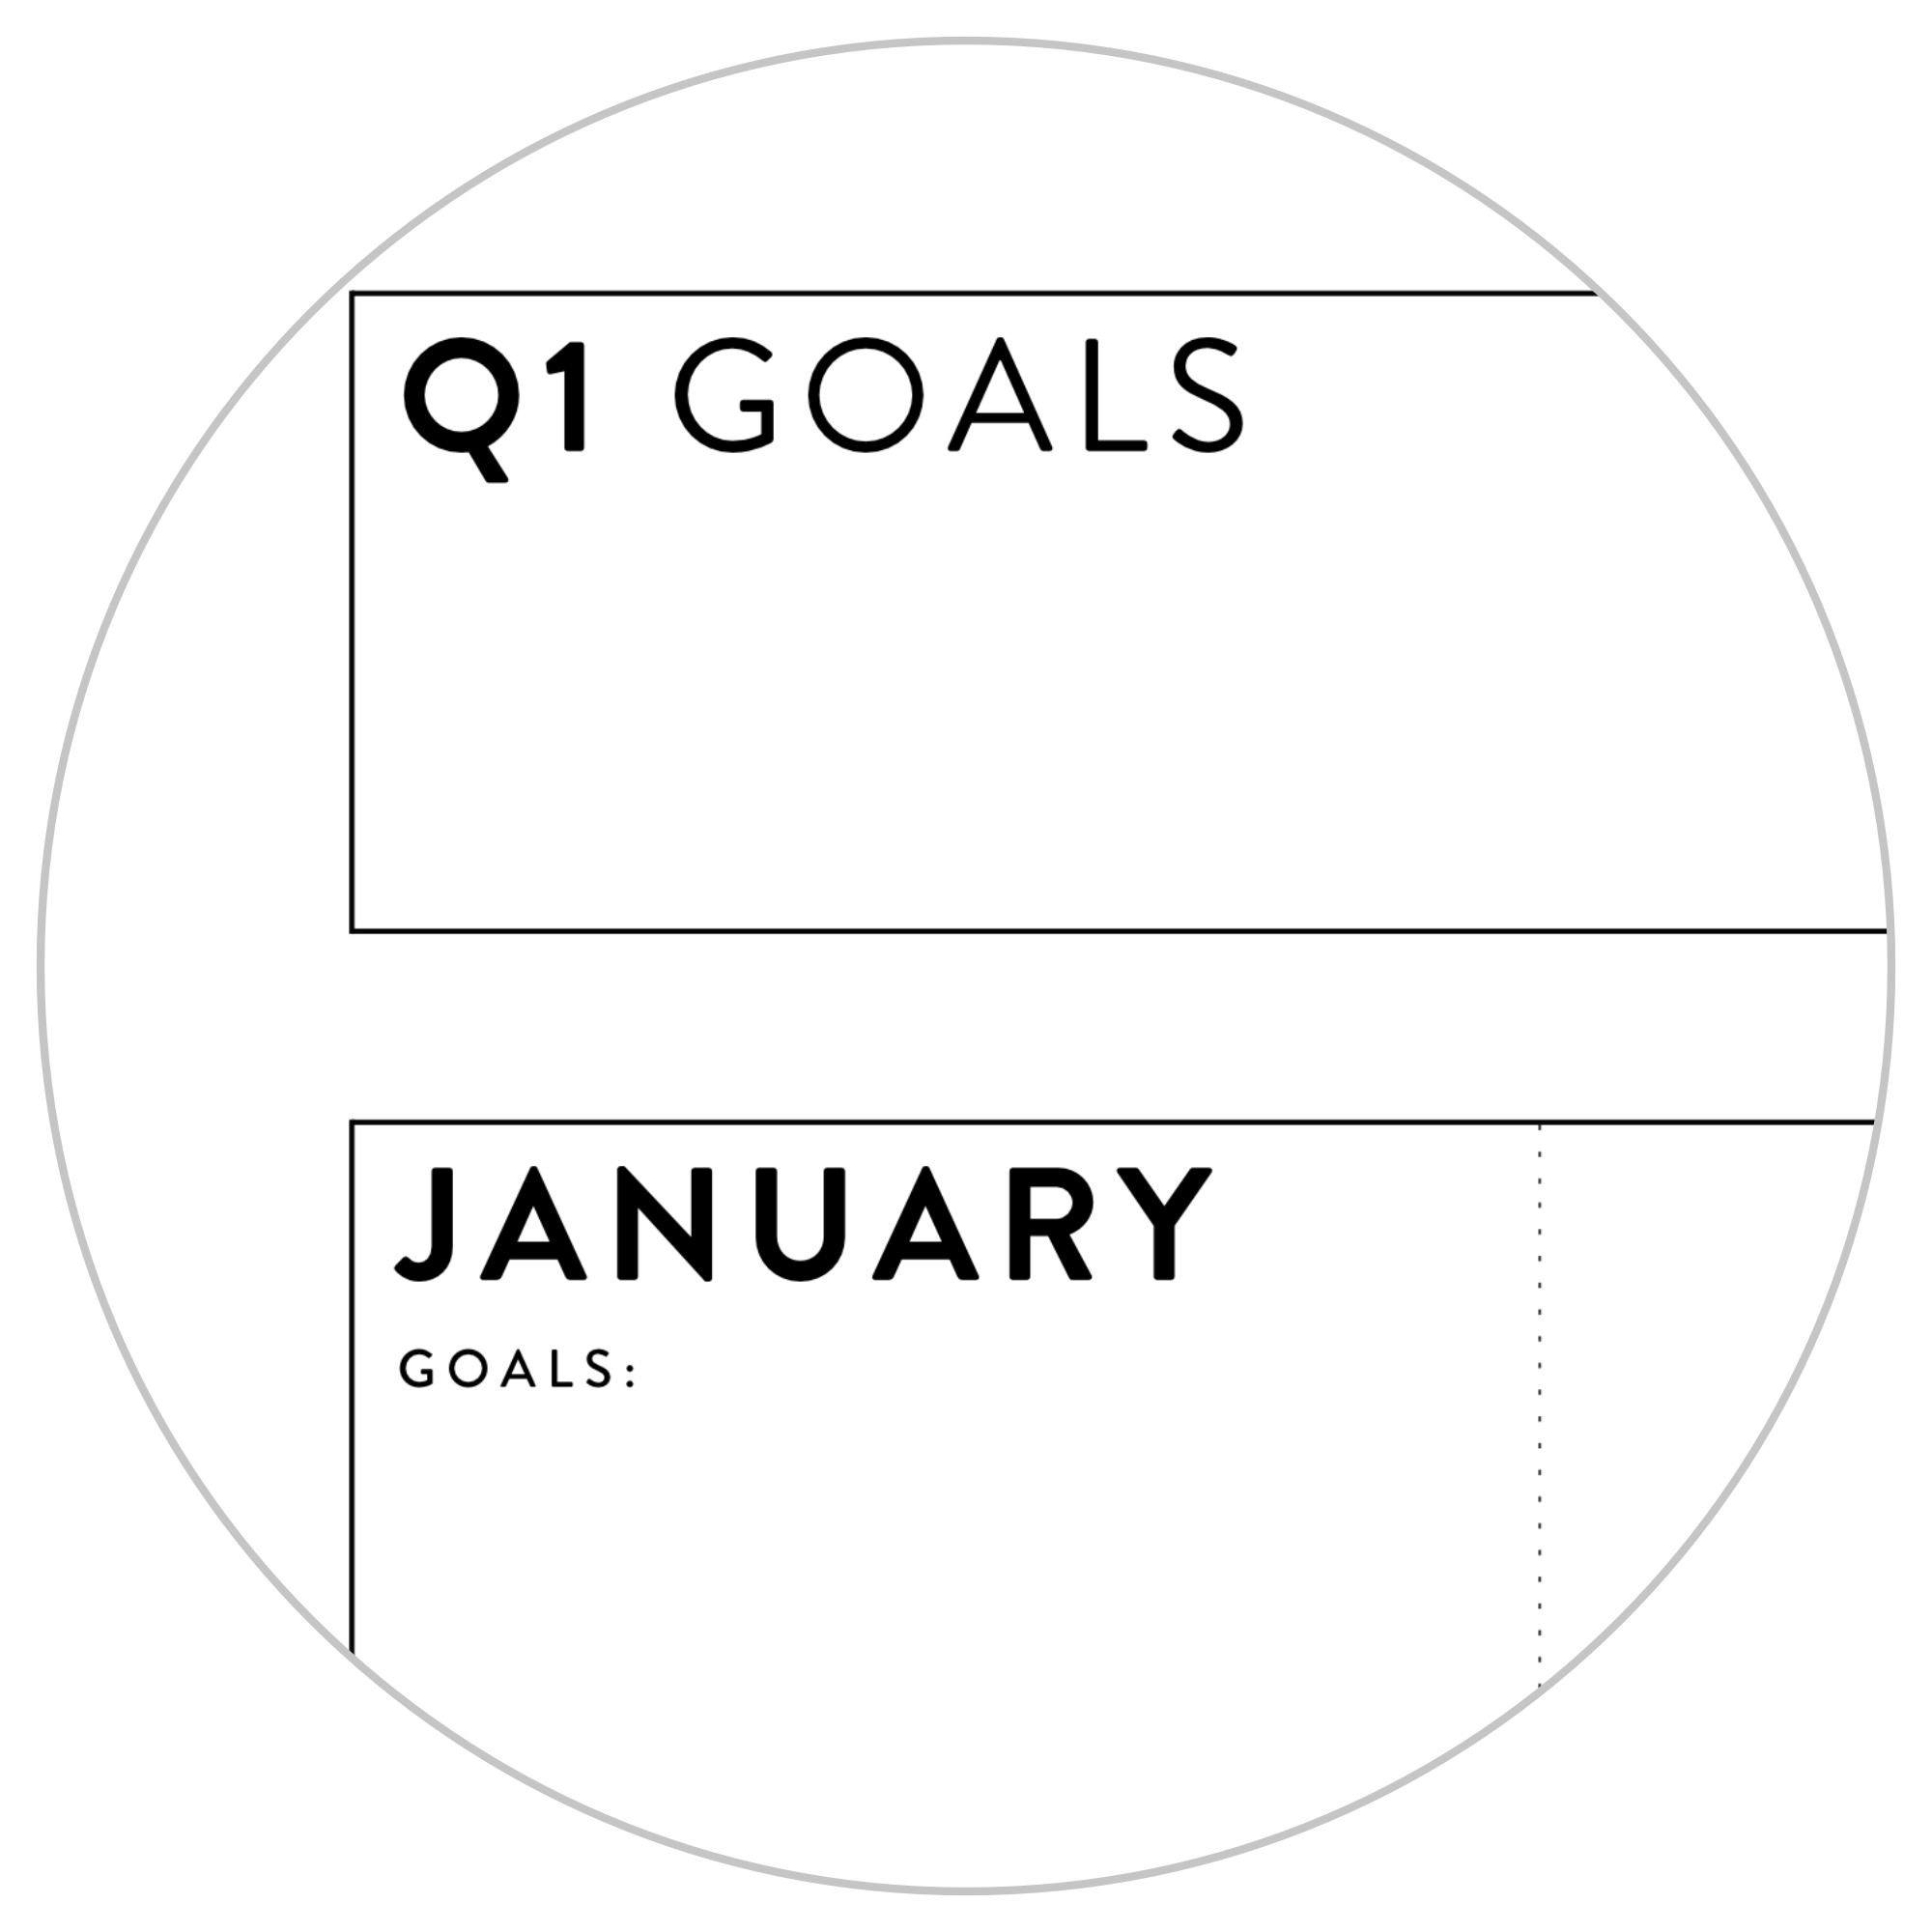 ANNUAL FOCUS AND GOALS WALL PLANNER 2021